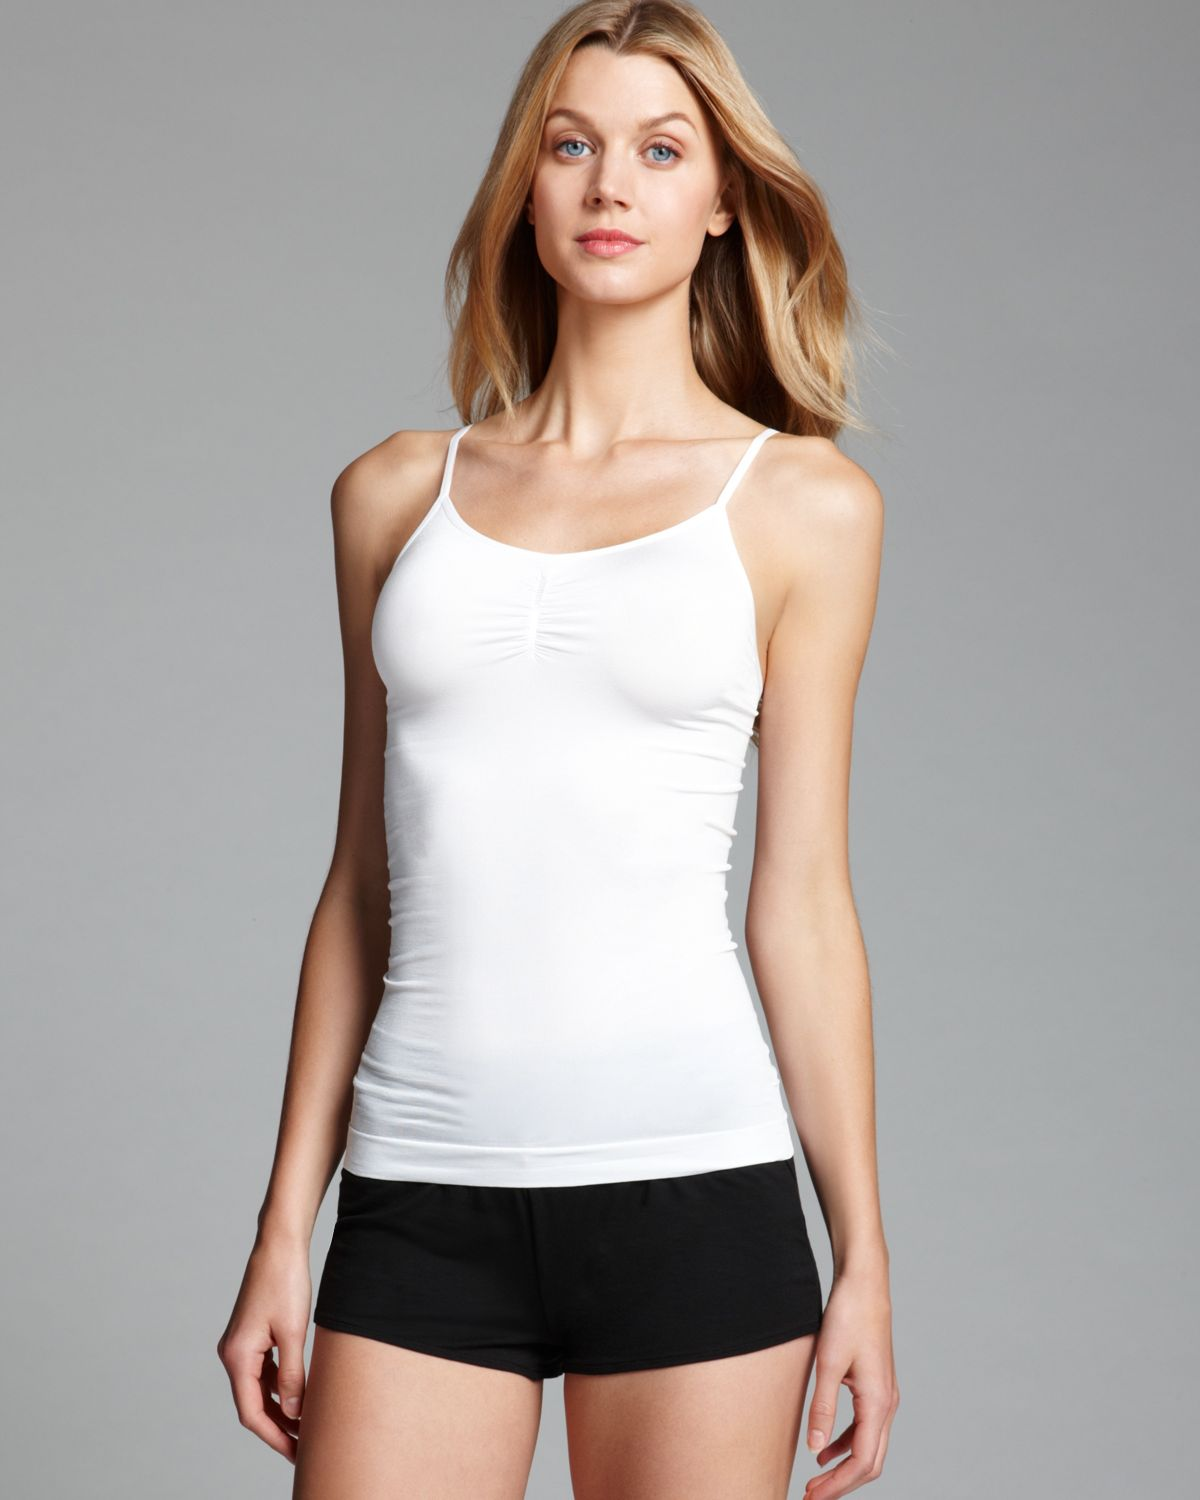 Find great deals on eBay for white camisole. Shop with confidence.